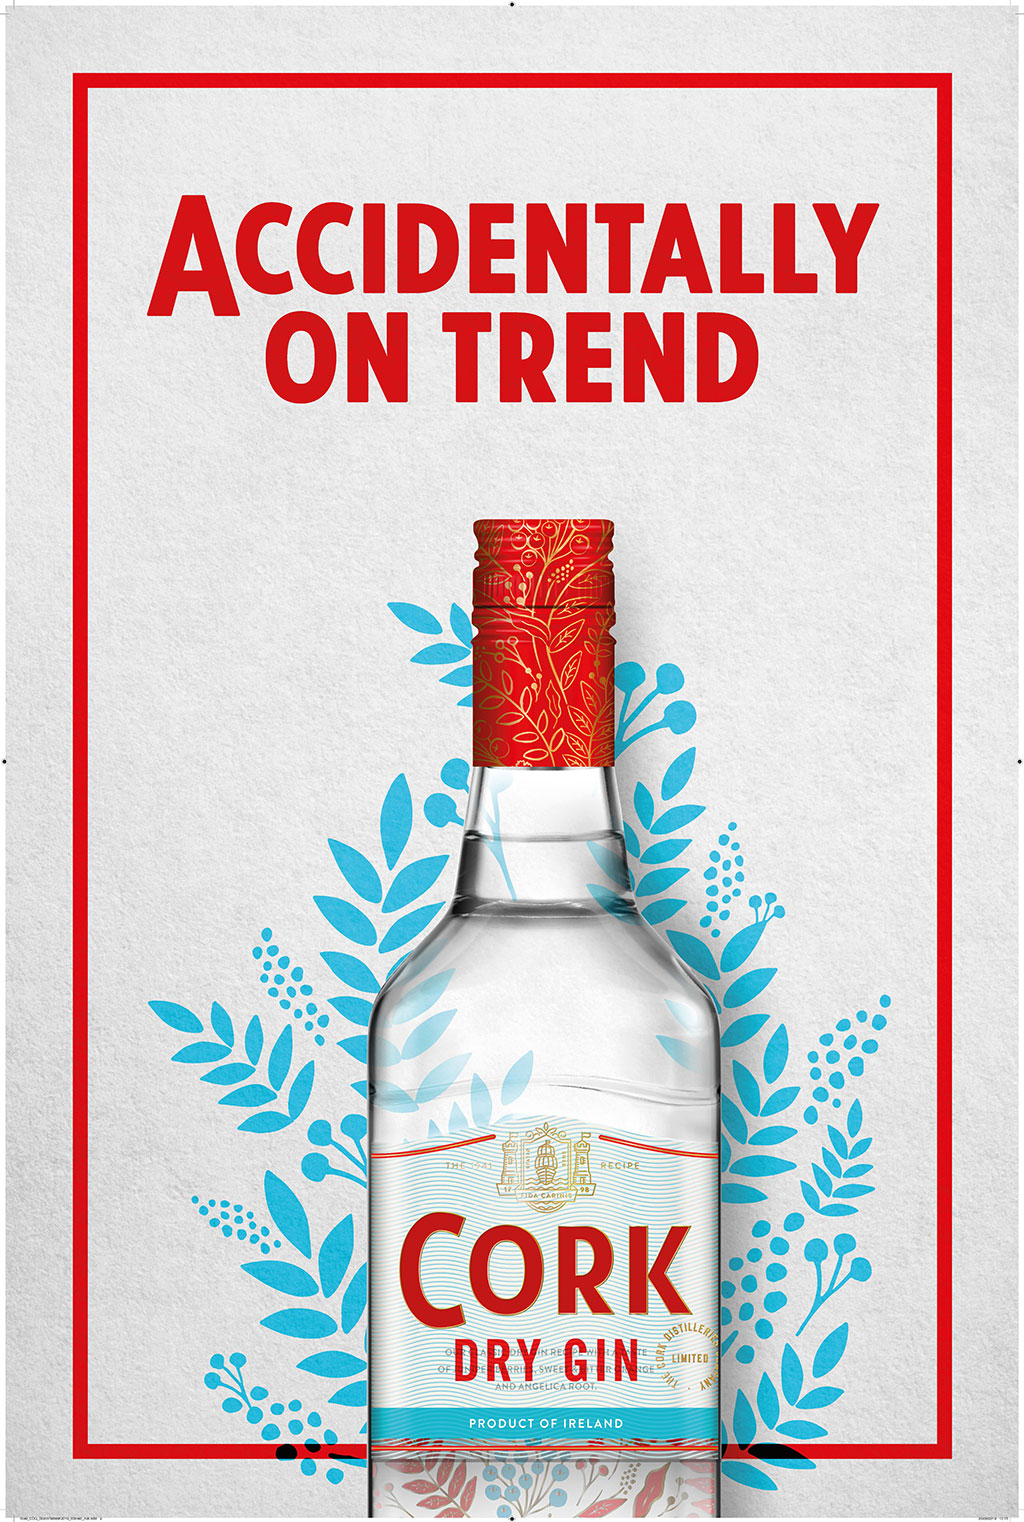 The Public House launch new Cork Dry Gin campaign with a simple slice of lemon